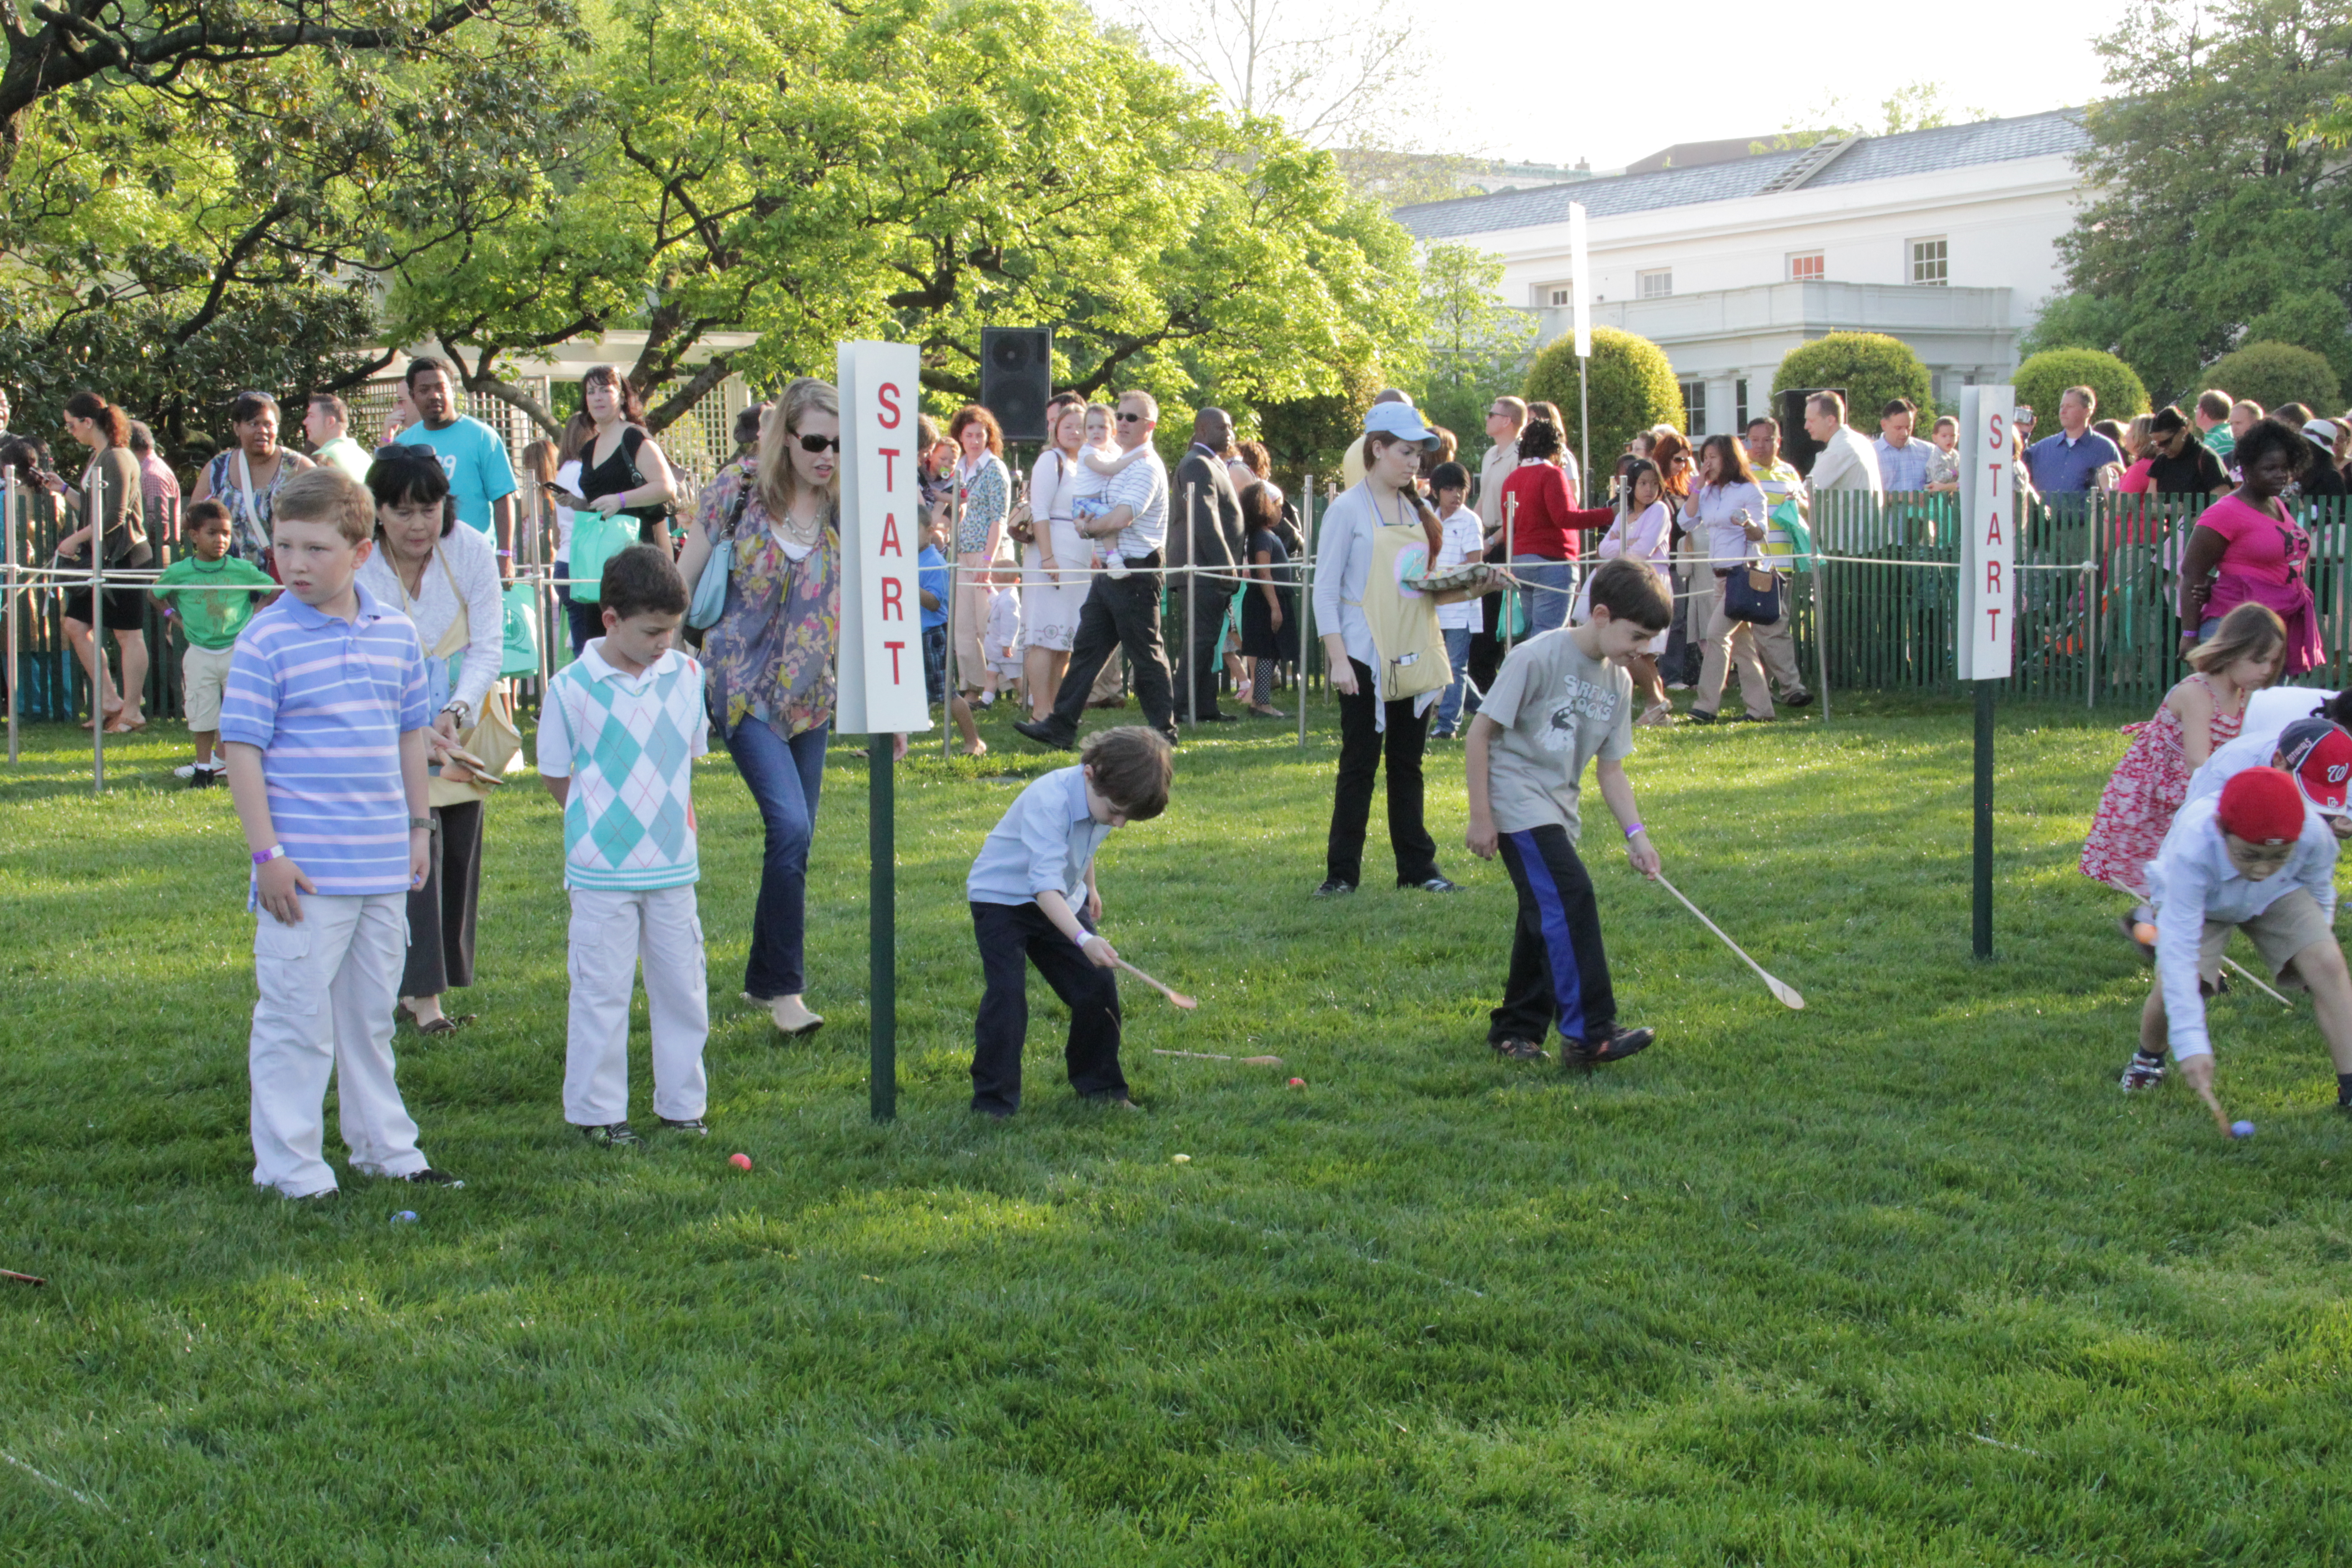 The White House Easter Egg Roll Historic District